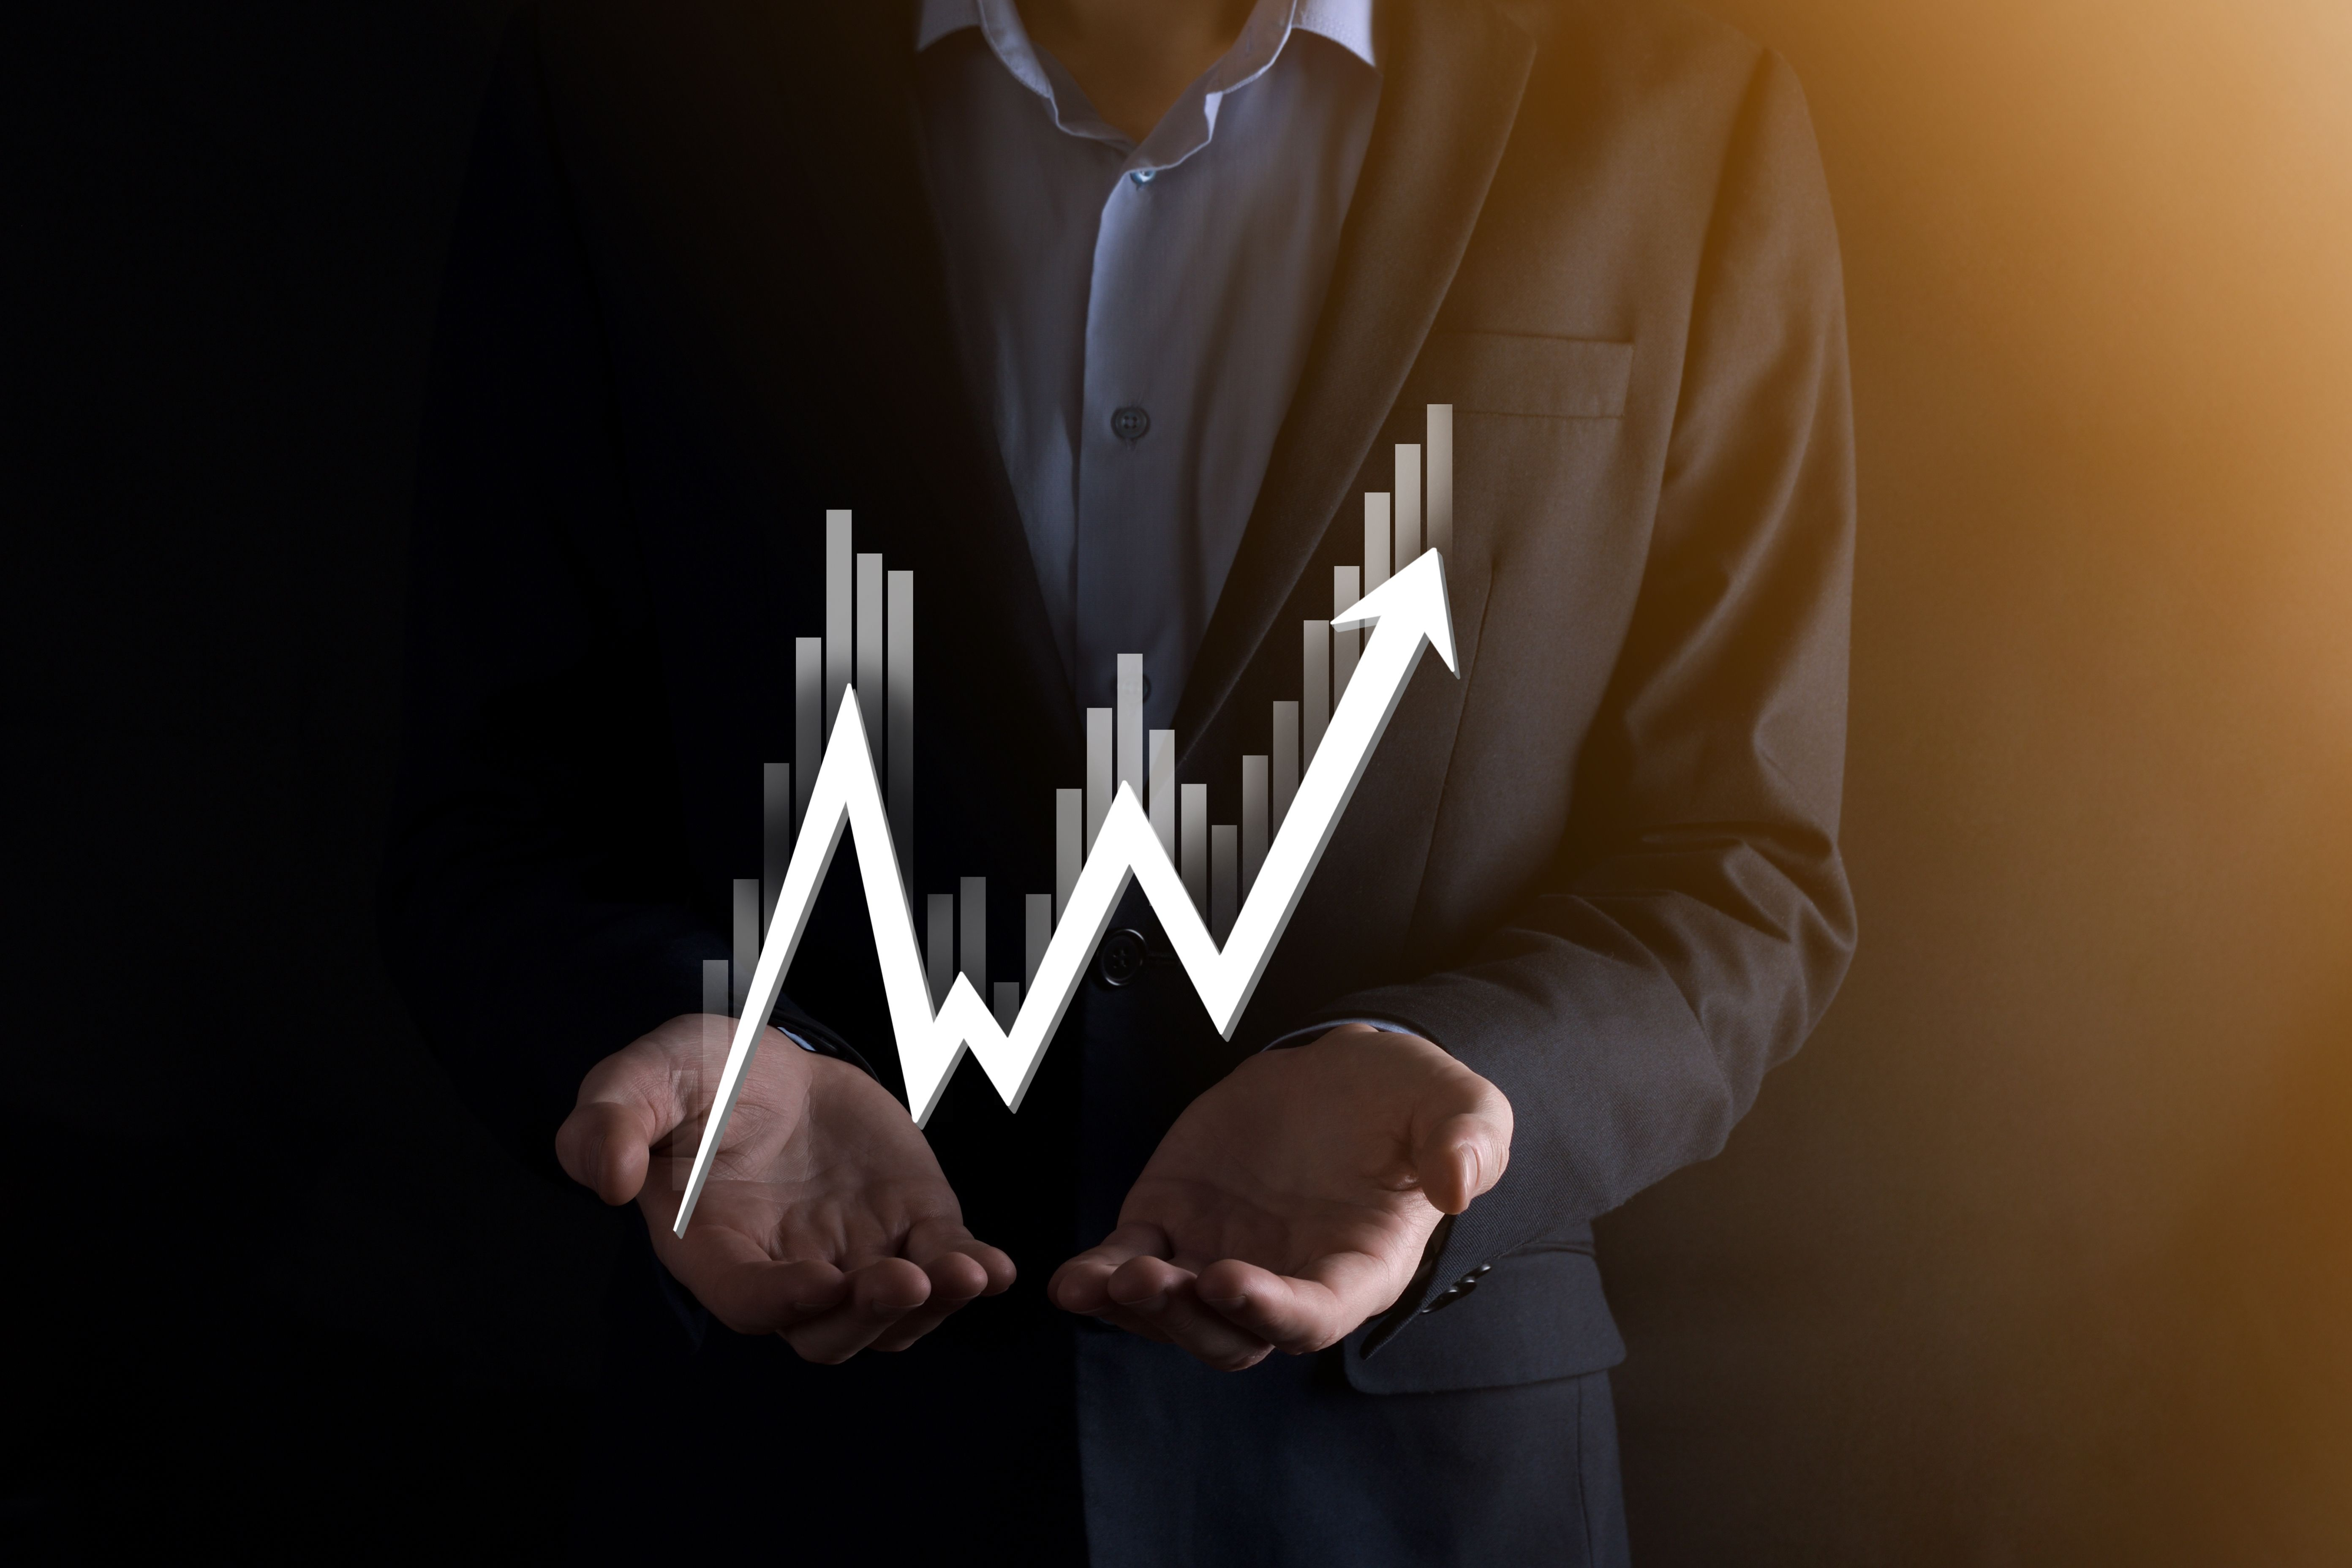 hand-hold-sales-data-economic-growth-graph-chart-business-planning-strategy-analysing-trading-exchange-financial-banking-technology-digital-marketing-profit-growing-plan.jpg